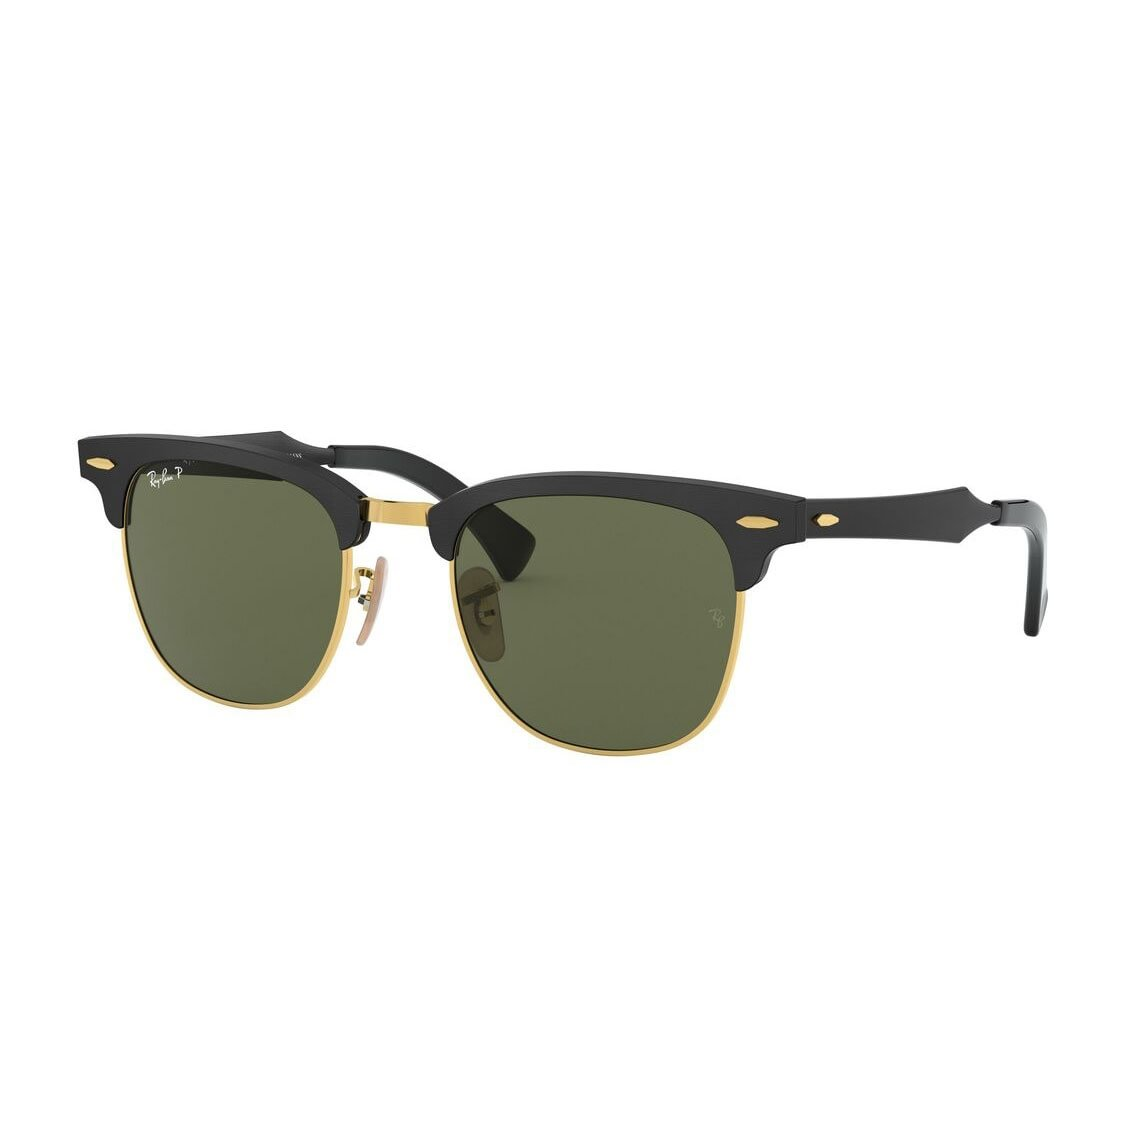 Ray-Ban Clubmaster Aluminum RB3507 136/N5 51